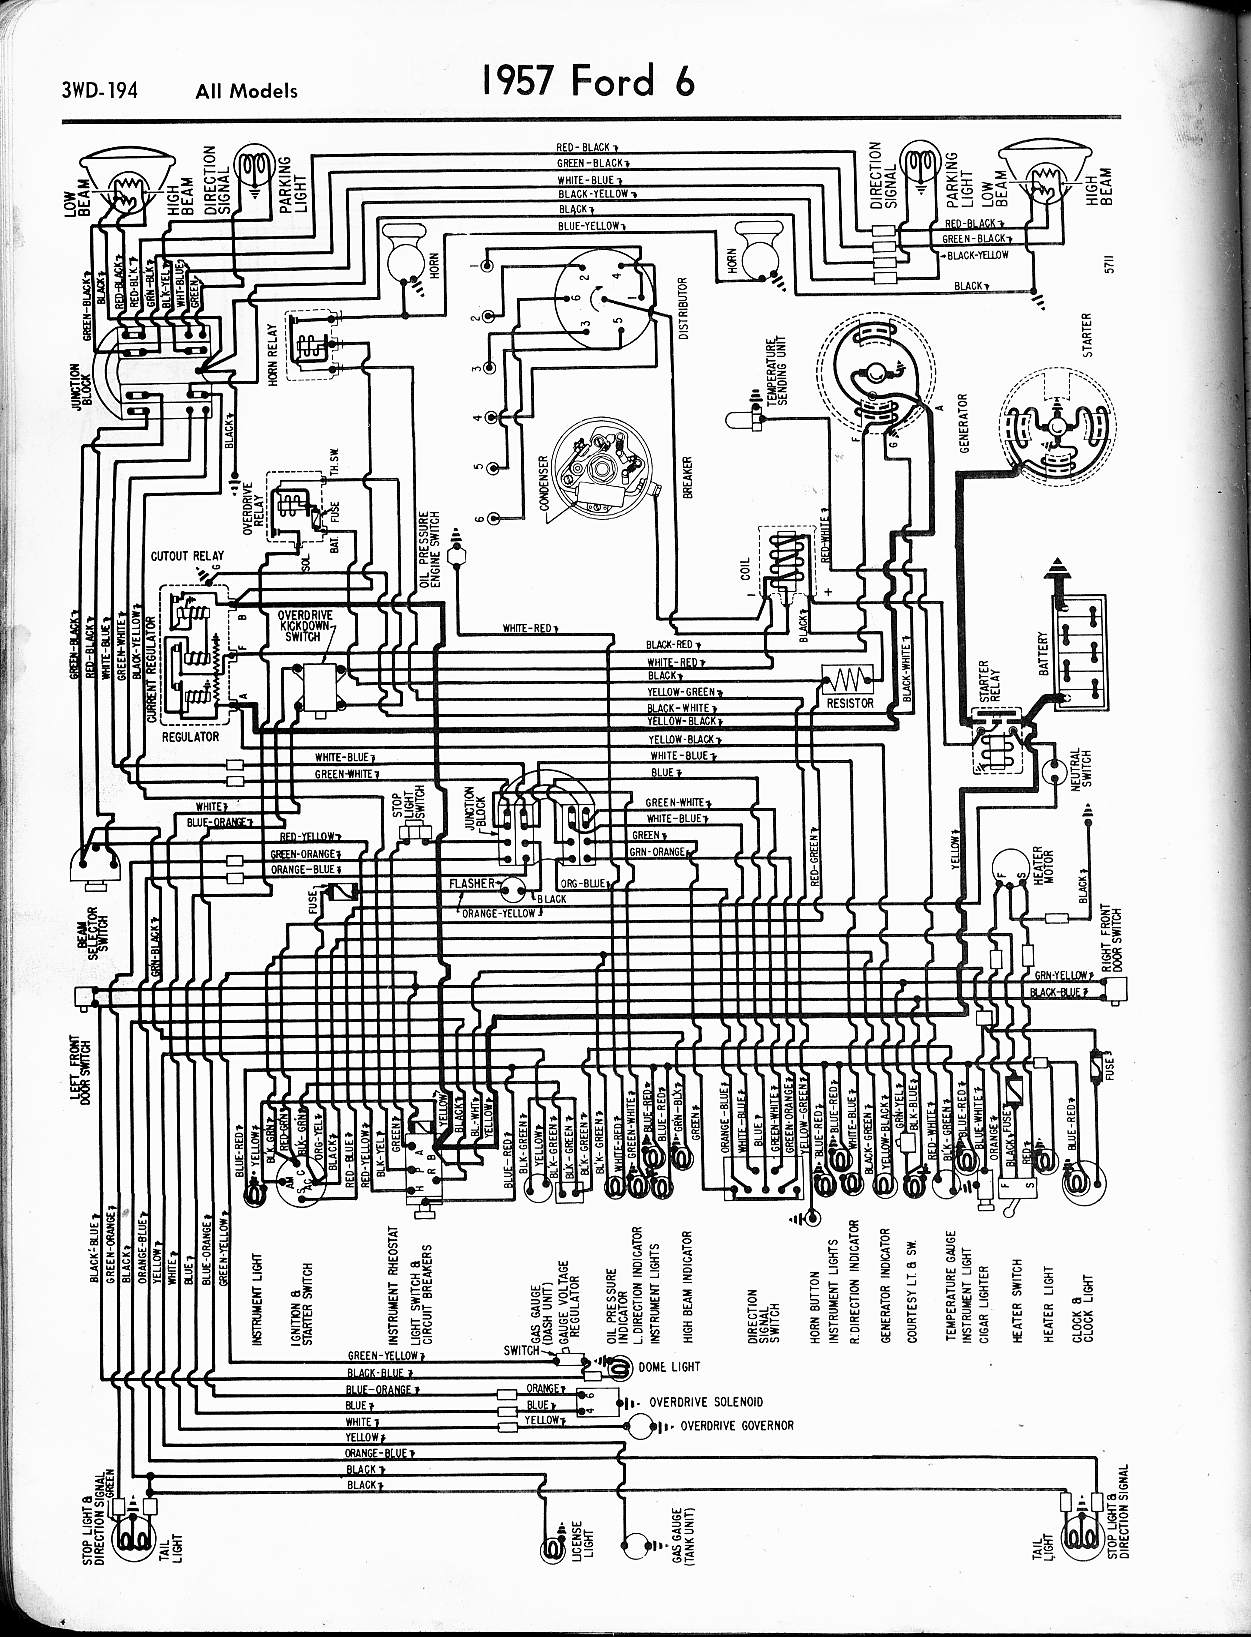 MWire5765 194 57 65 ford wiring diagrams ford wiring schematics at eliteediting.co